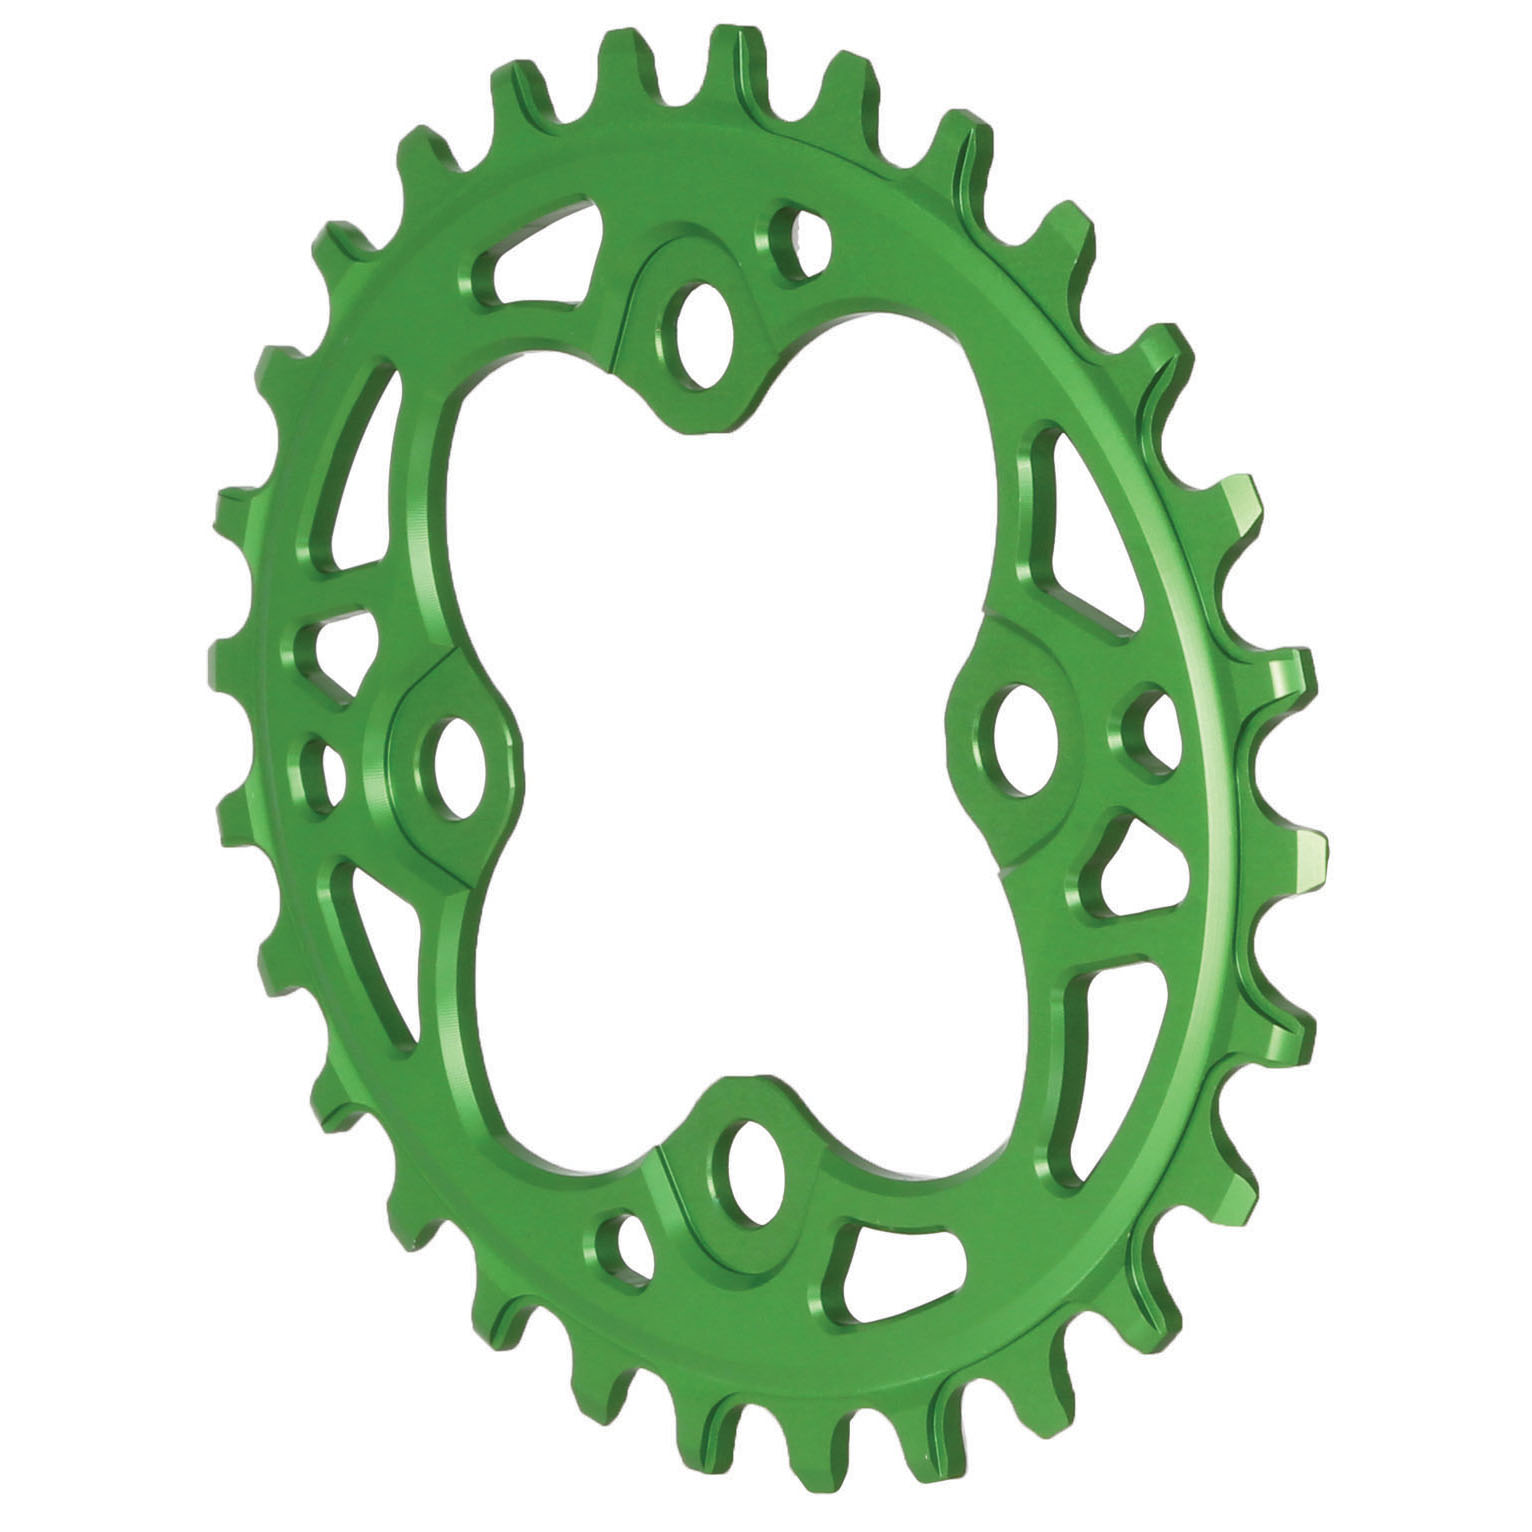 104 Oval Chainring, 64BCD 28T - Green